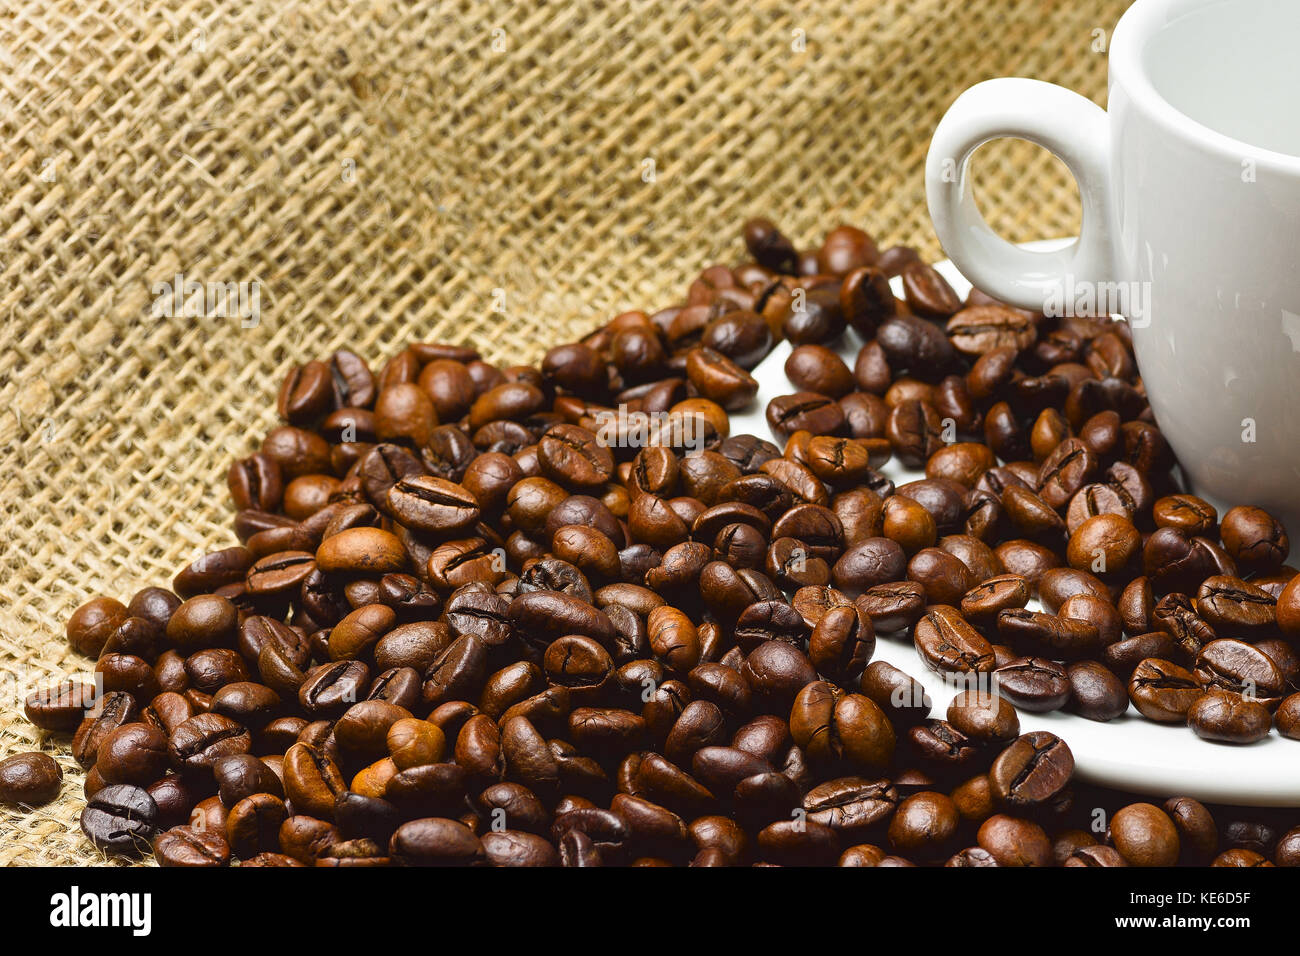 Close-up photo of grains of roasted black coffee with white porcelain cup on jute bags with blurred background and - Stock Image